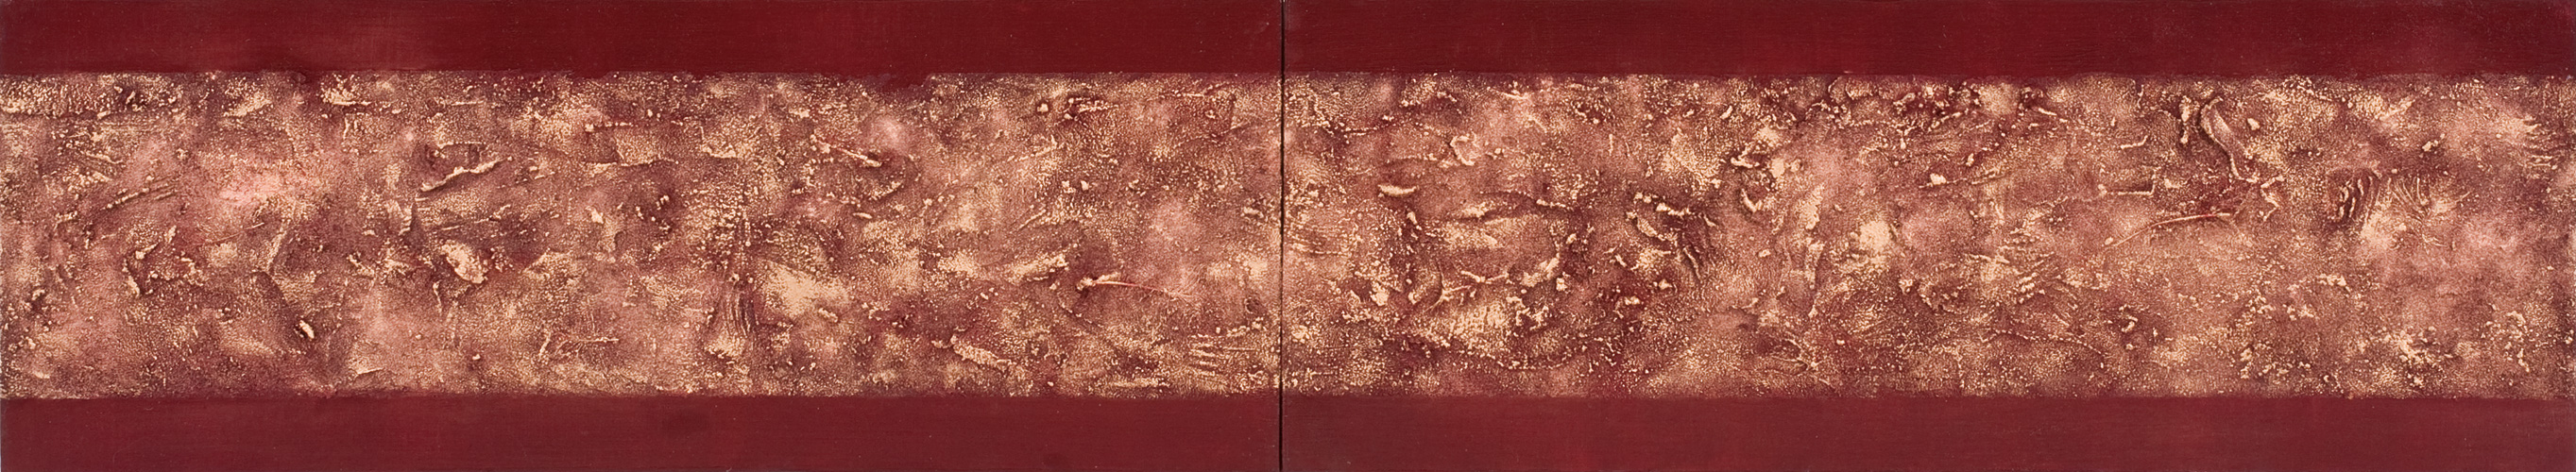 Sutra (diptych), (oil & mixed media on canvas, 30.48 x 81.28cm each, 2013)